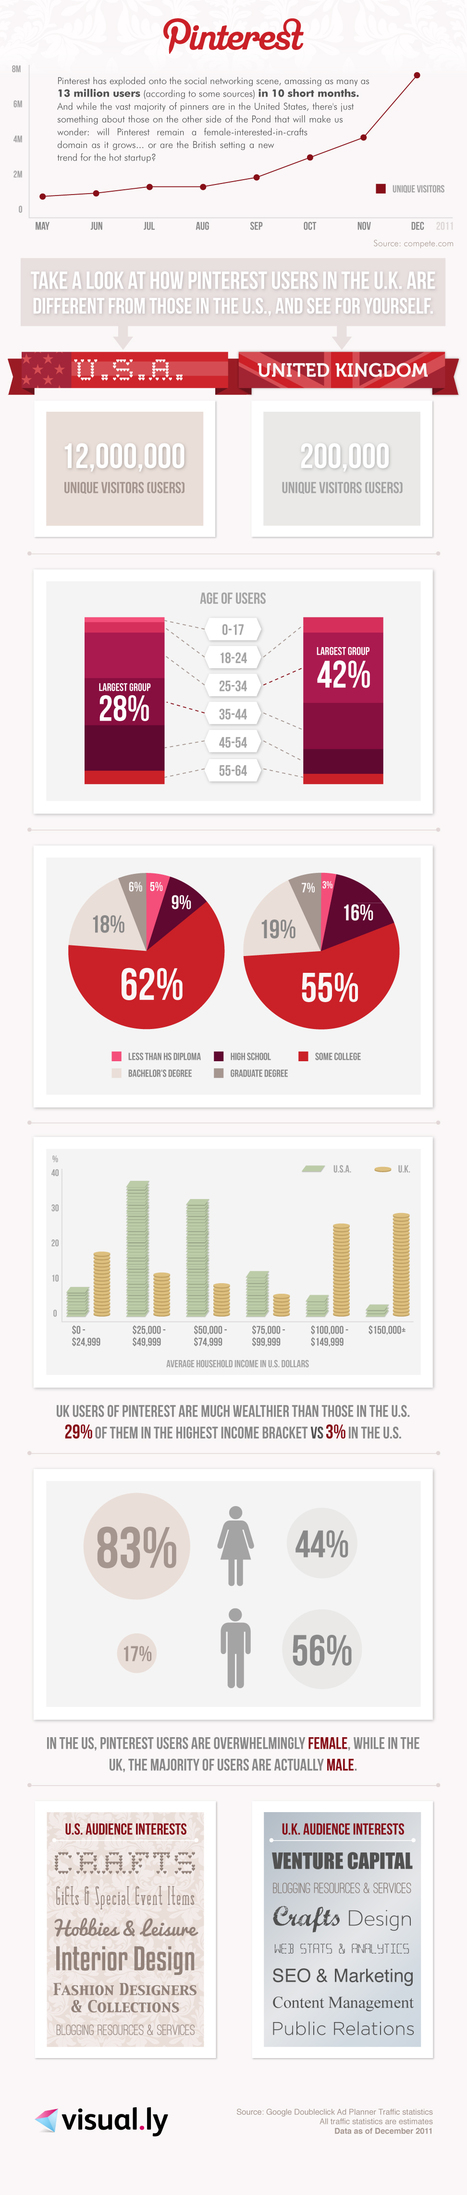 Pinterest: How Do U.S. and UK Users Compare? [INFOGRAPHIC] | Great Business Ideas | Scoop.it